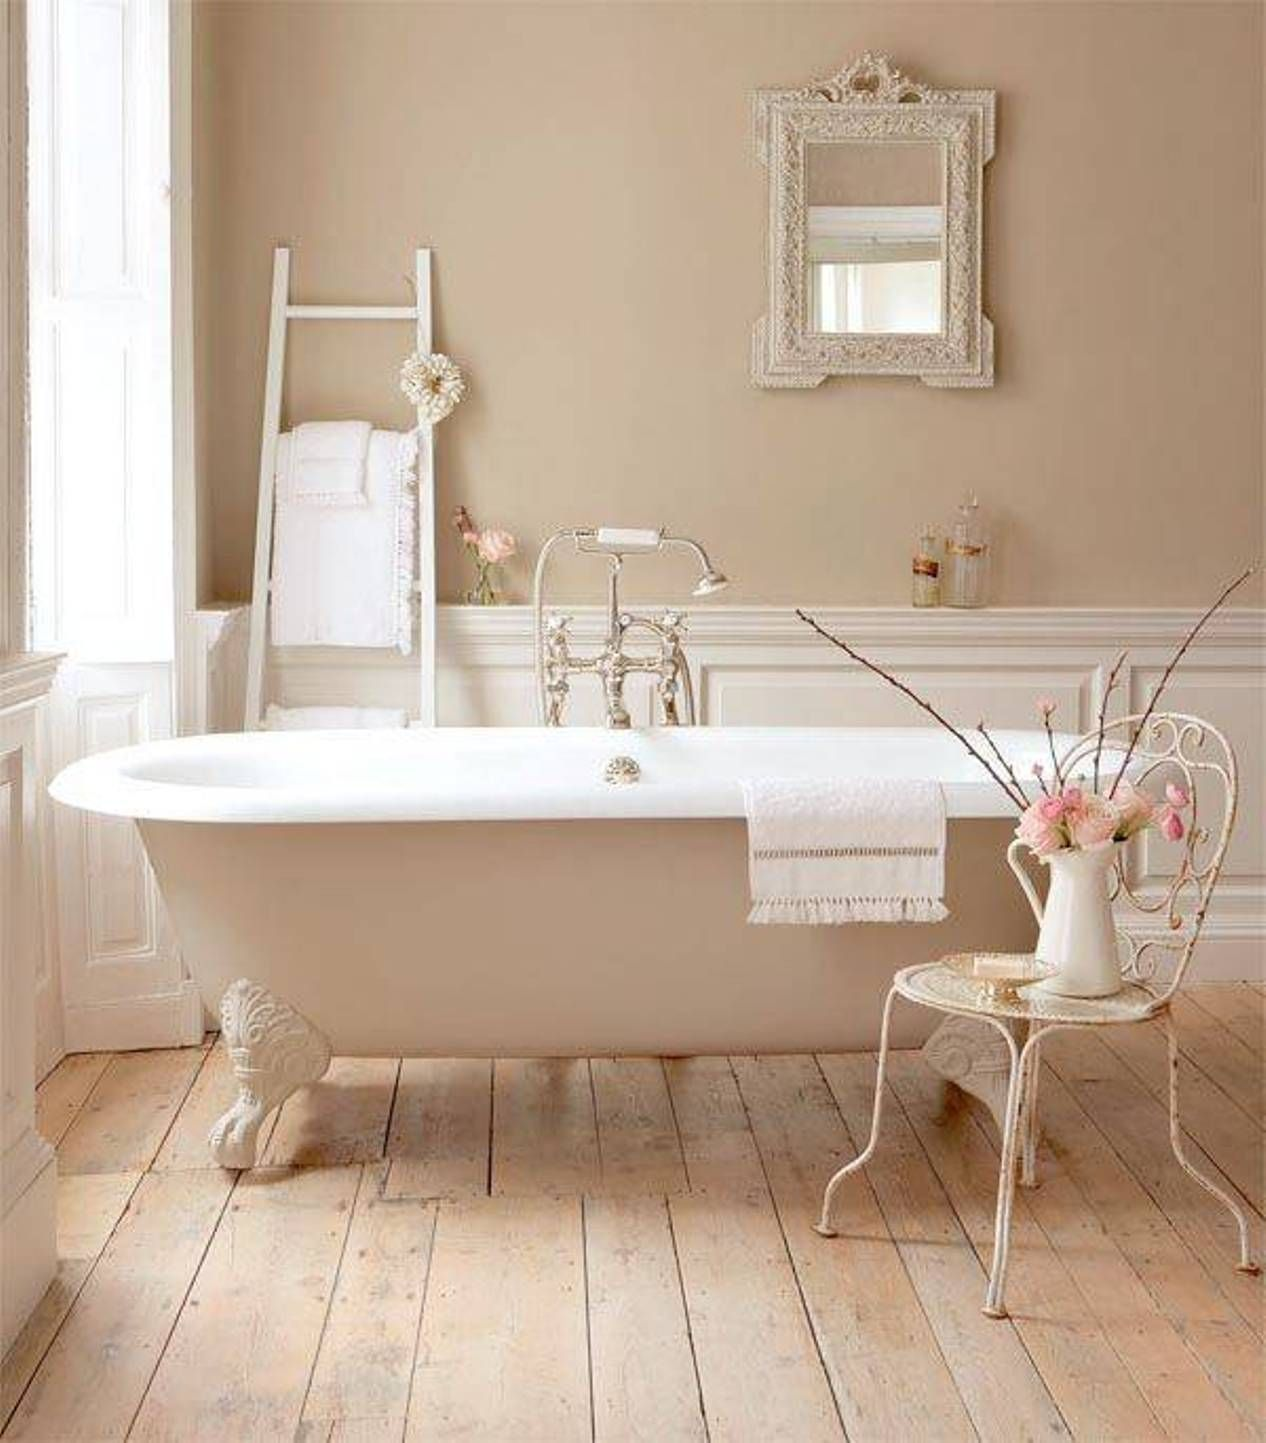 Pics Of Pretty Shabby Chic Style Bathroom Shabby Chic Style for Bathroom